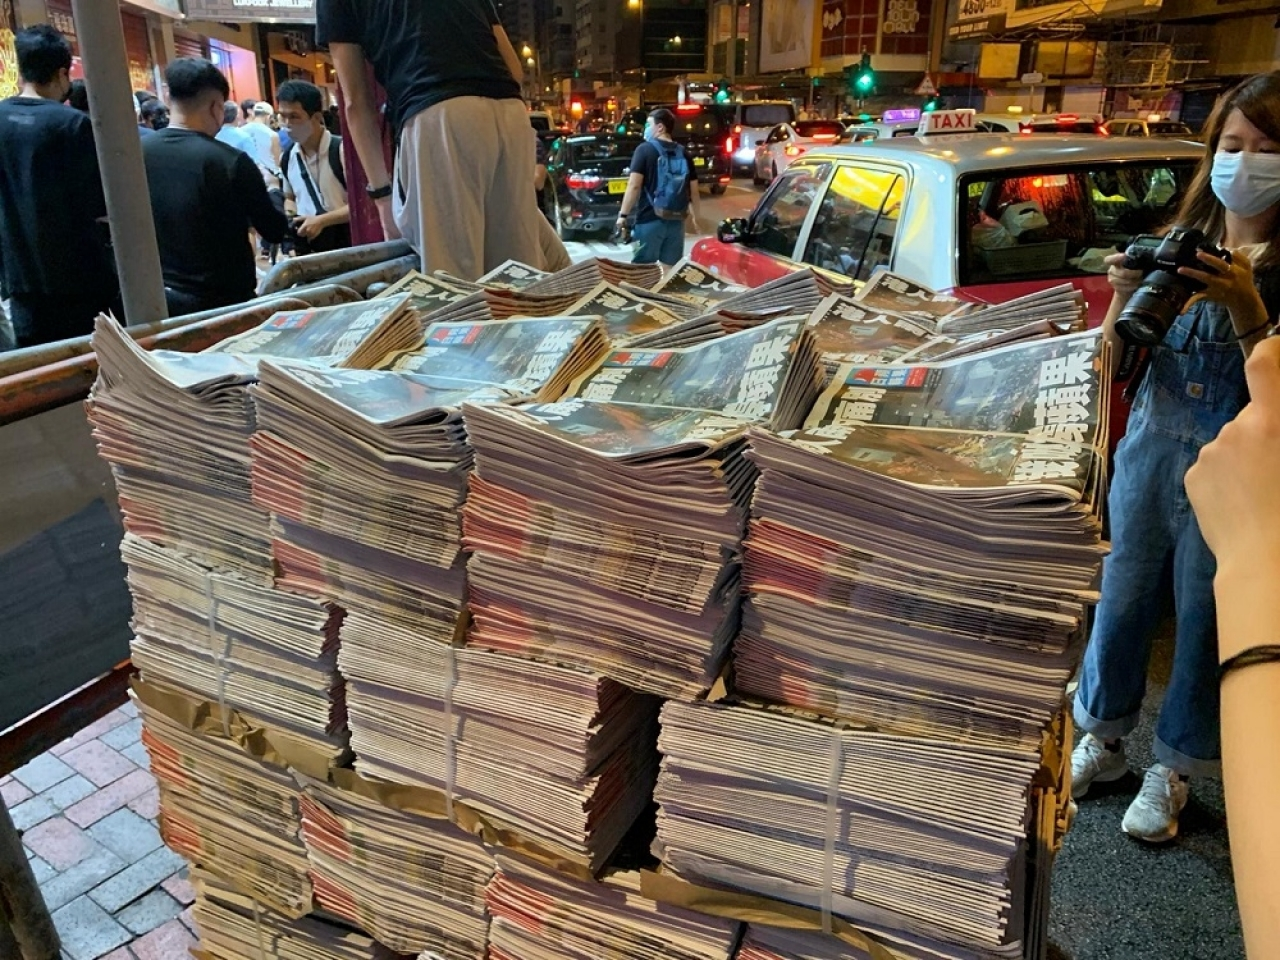 Extra copies were printed to cope with the expected demand. Photo: RTHK